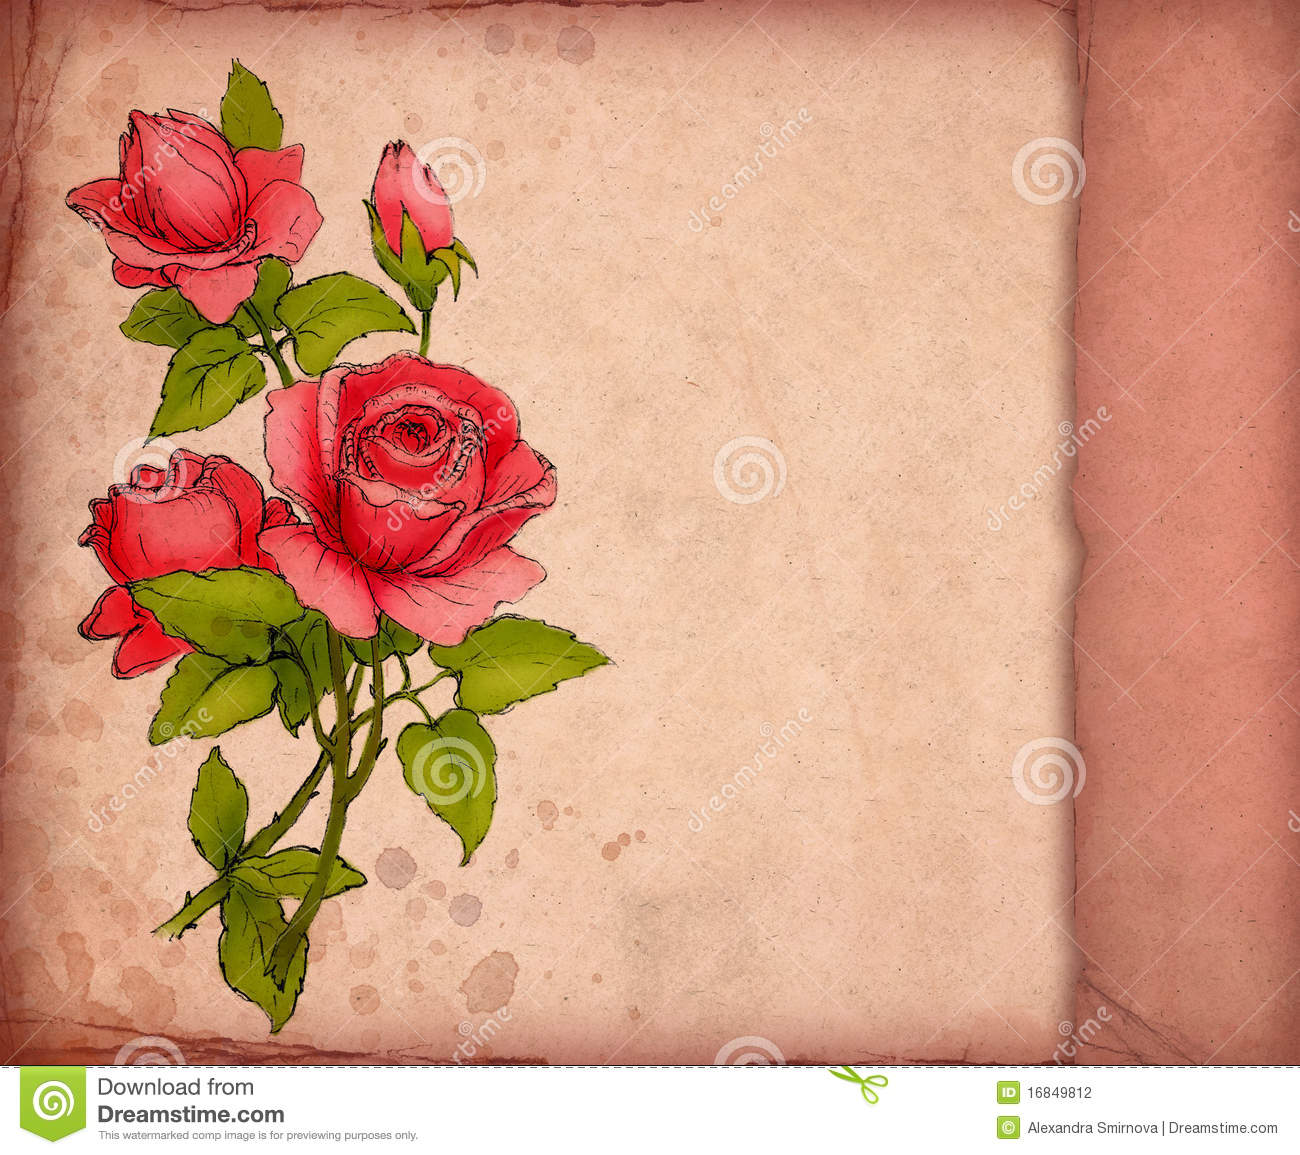 Greeting card with drawing of red rose stock illustration greeting card with drawing of red rose m4hsunfo